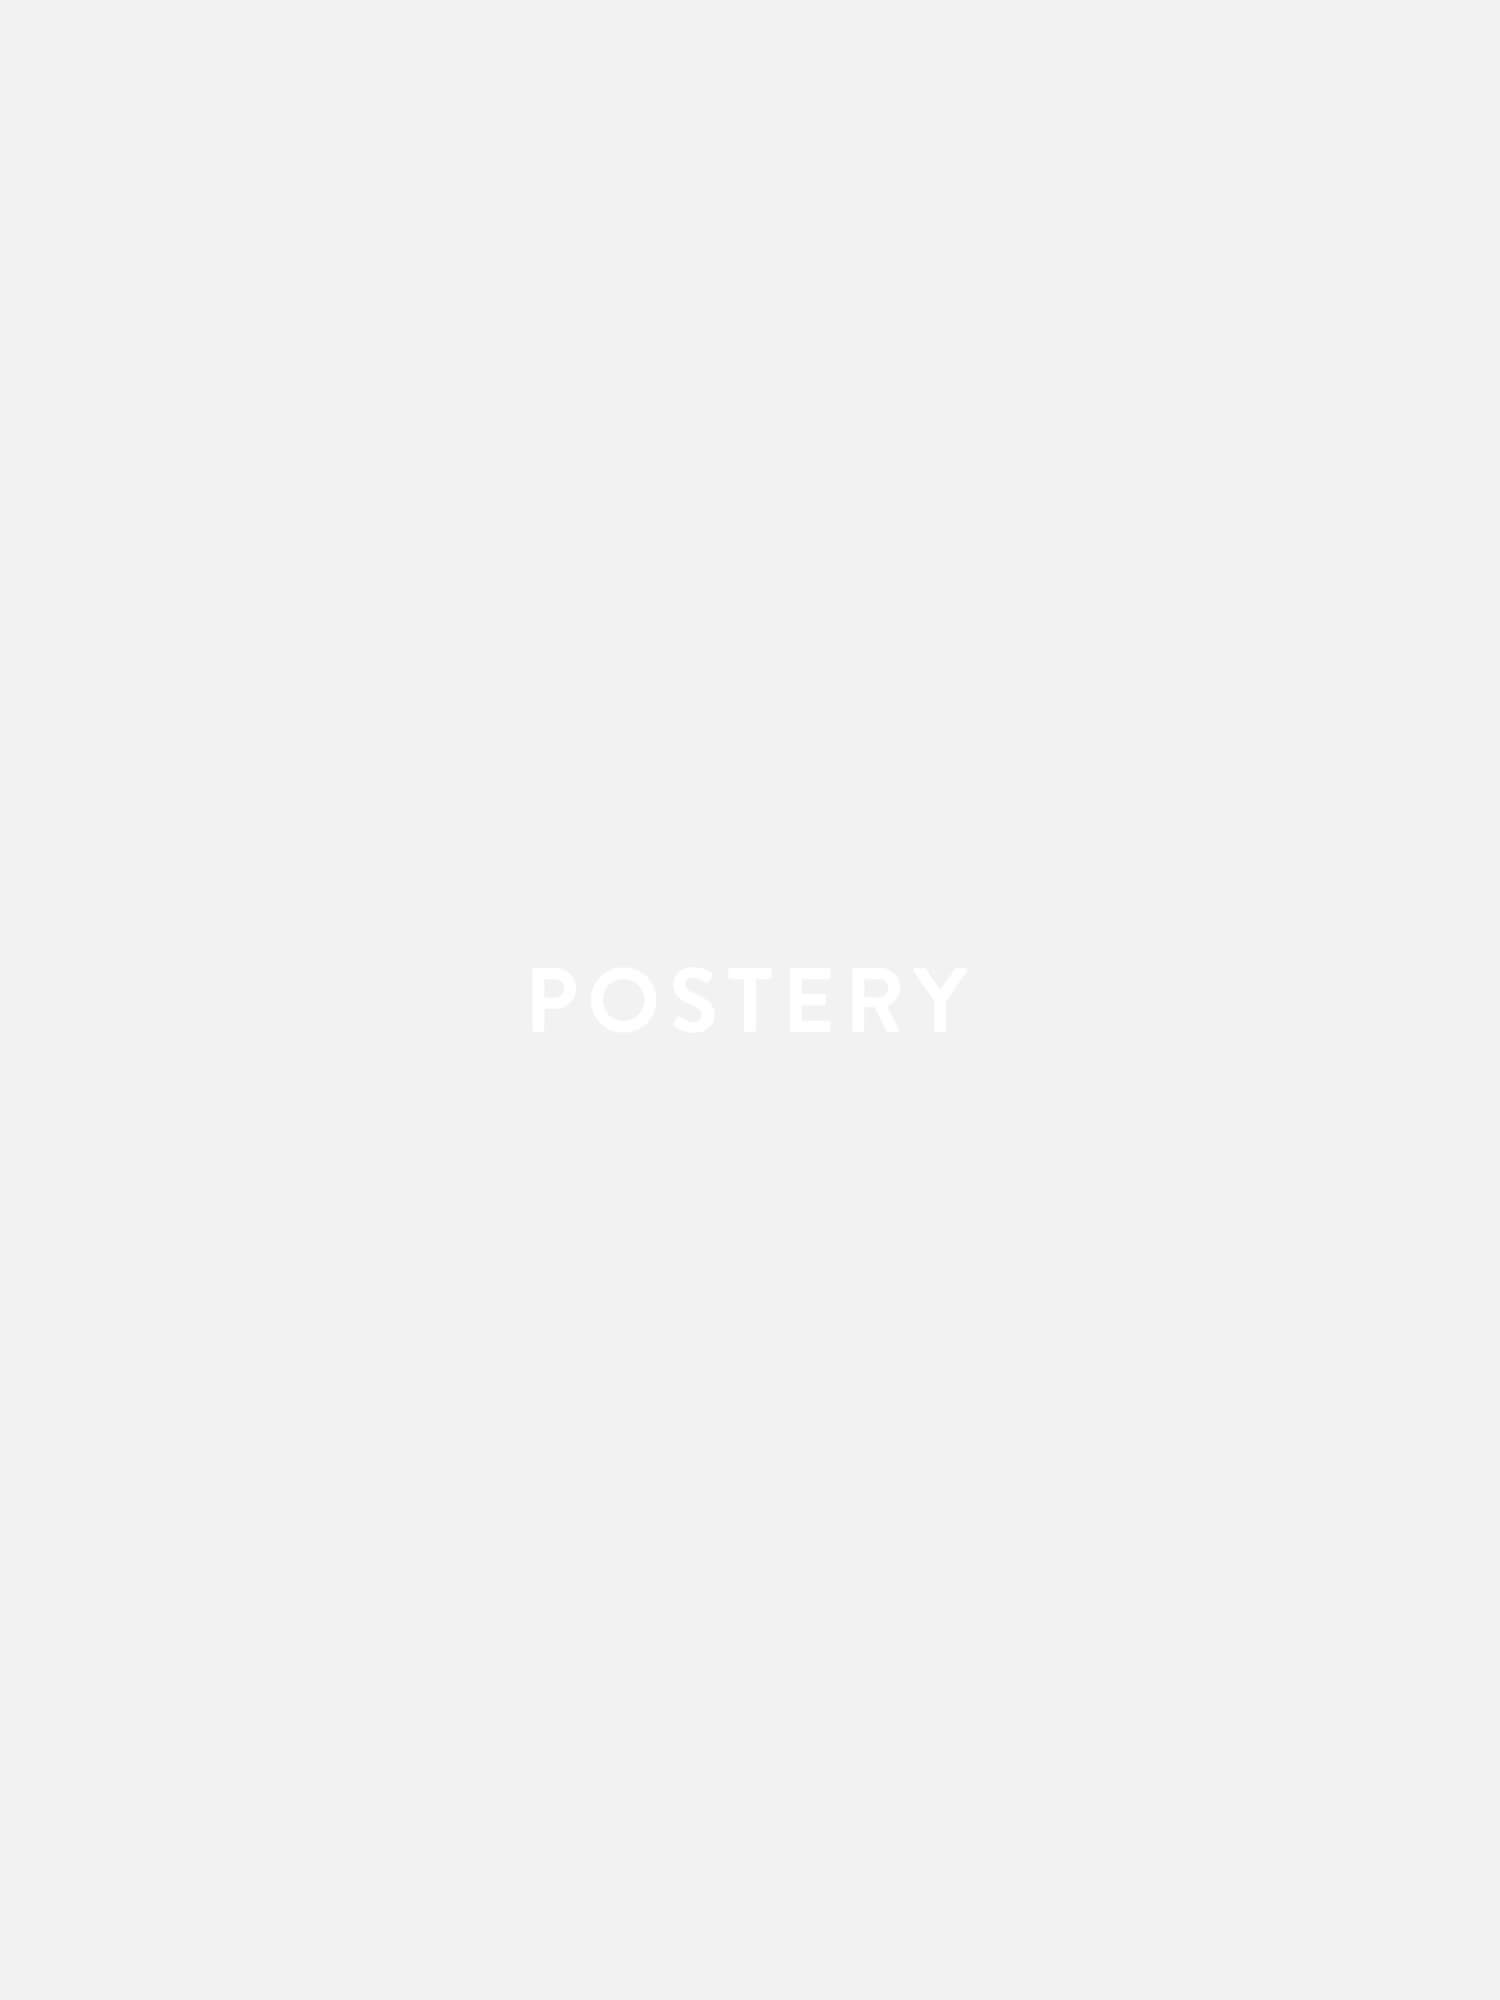 Cactus House Poster